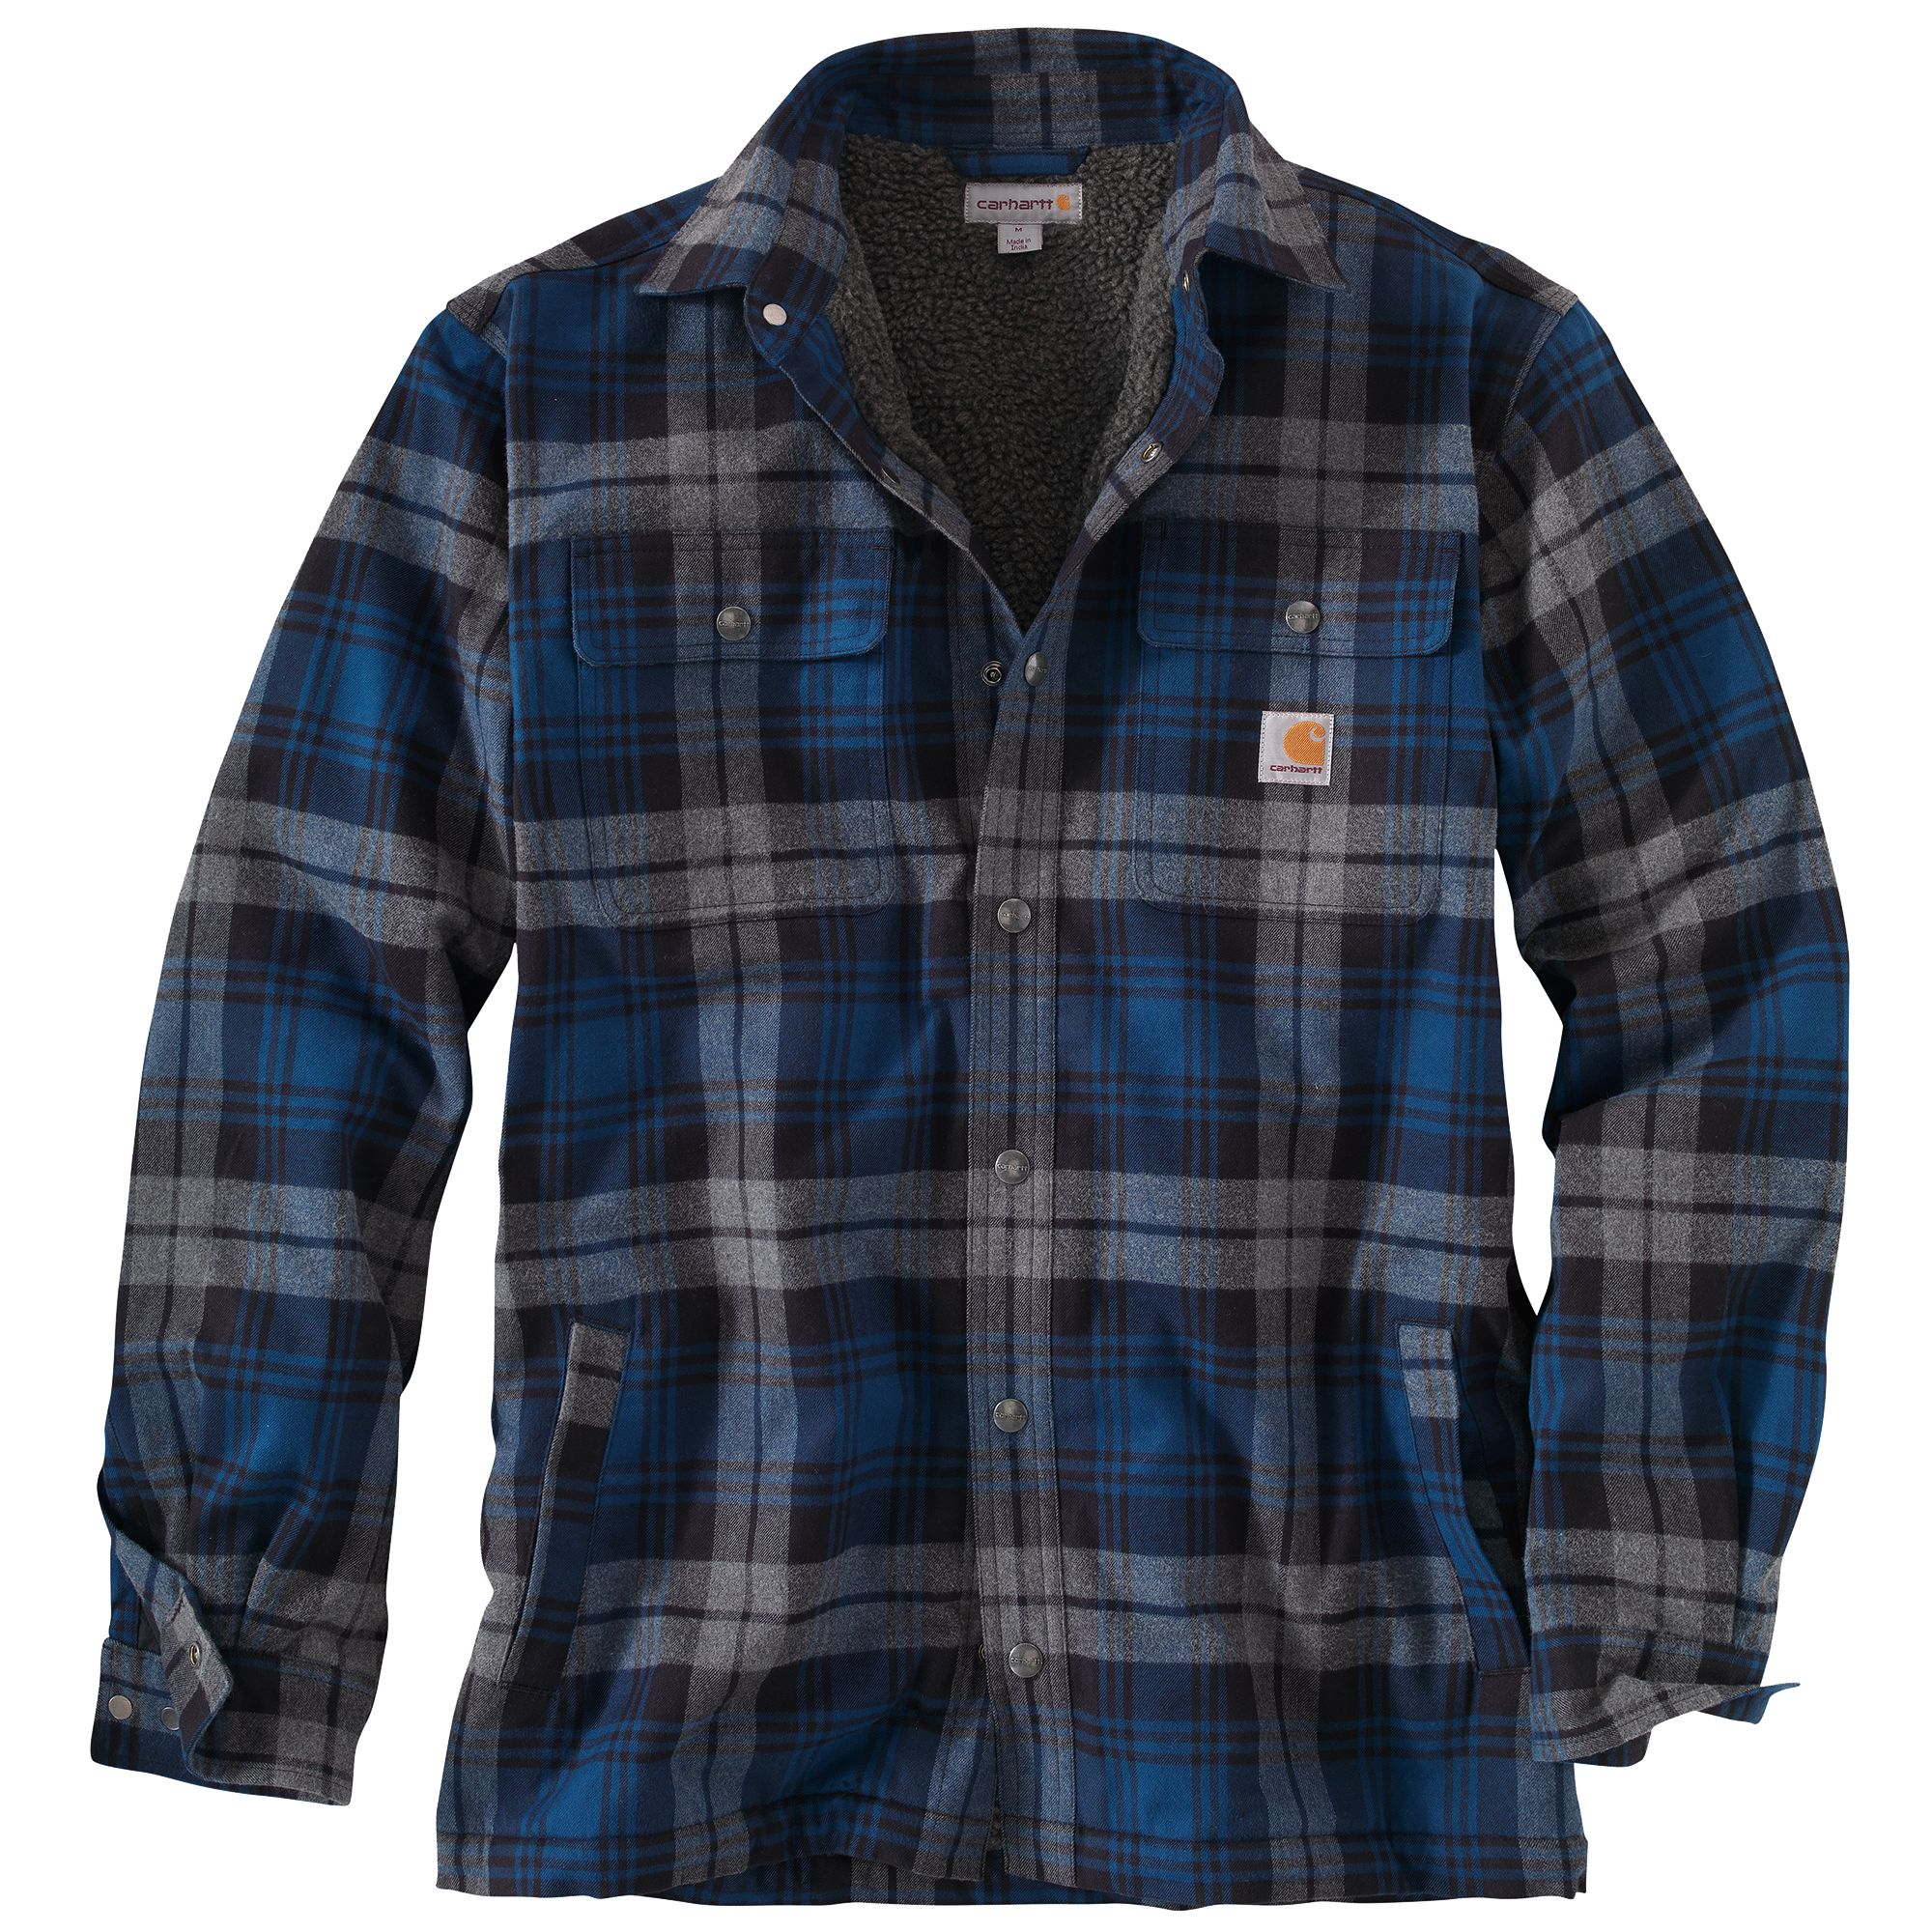 Carhartt Men's Hubbard Sherpa-Lined Shirt Jacket | DICK'S Sporting ...